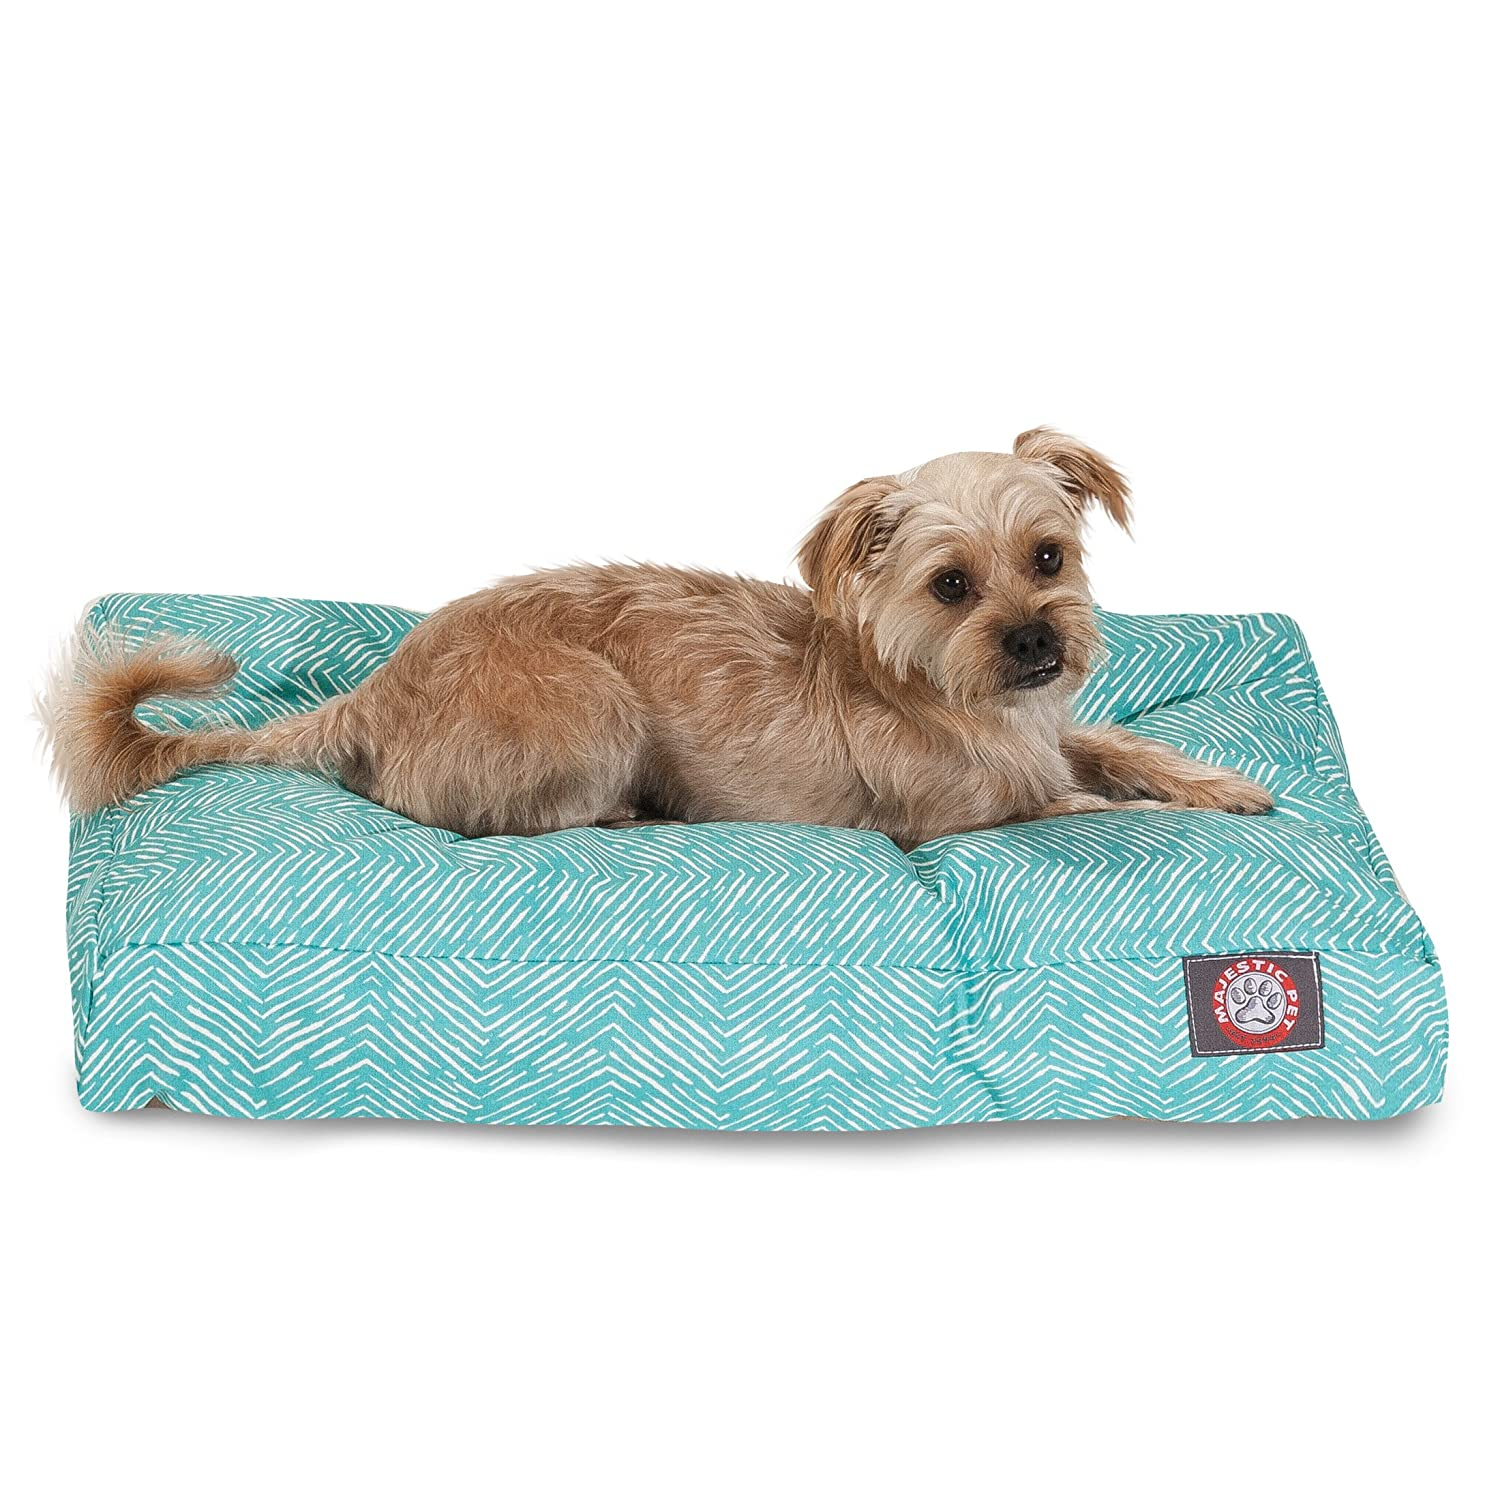 GigaTent Elevated Pet Cot with Steel Frame – Foldable Raised Comfortable Lightweight Durable Disassemble Play and Rest Portable Pet Bed for Dogs and Cats